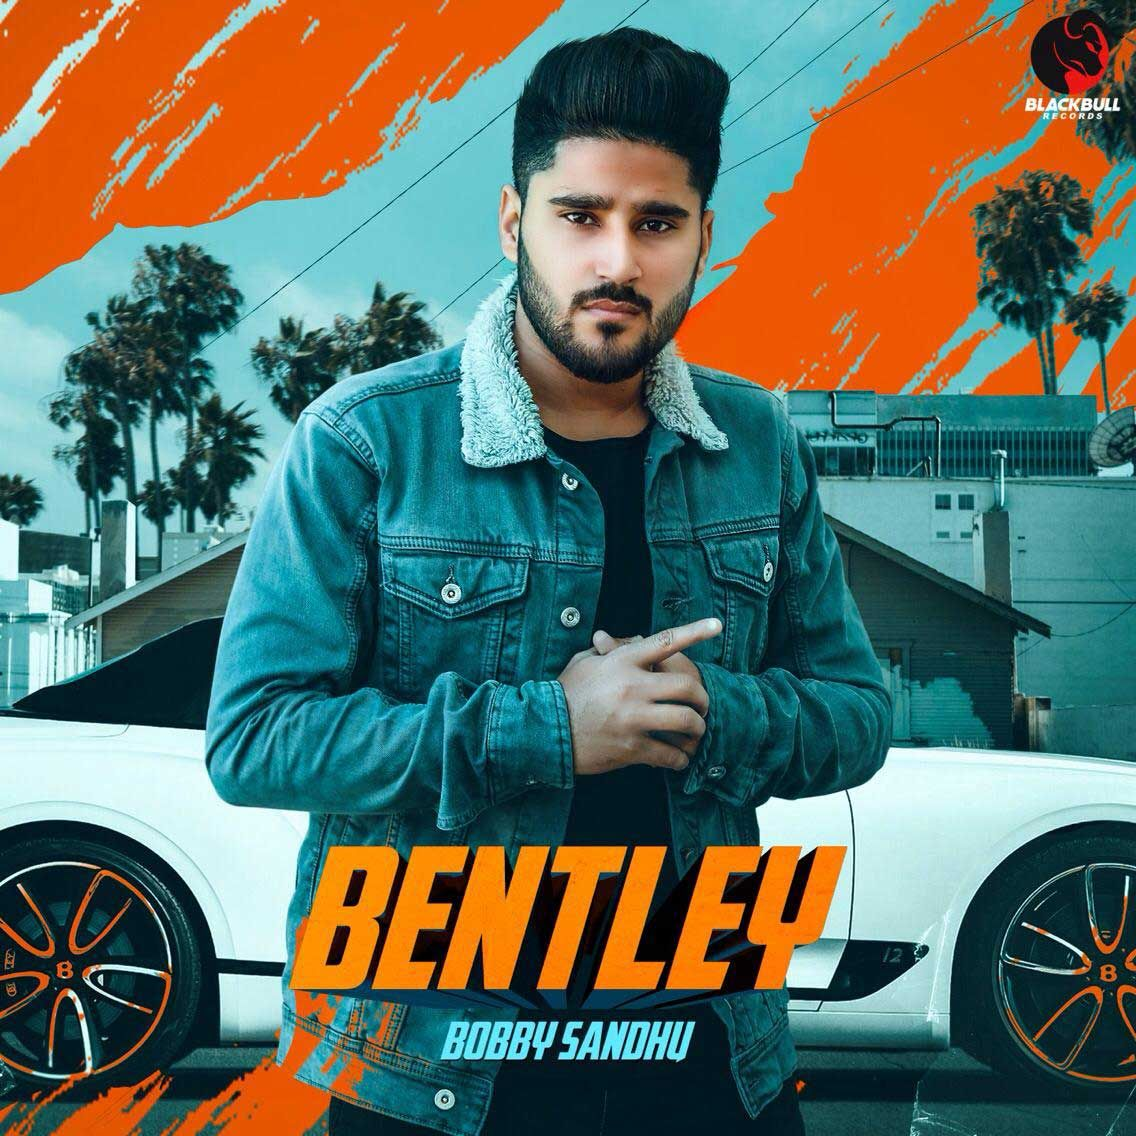 Bentley By Bobby Sandhu Mp3 Punjabi Song Download And Listen Bentley Latest Music Free Mp3 Download Websites